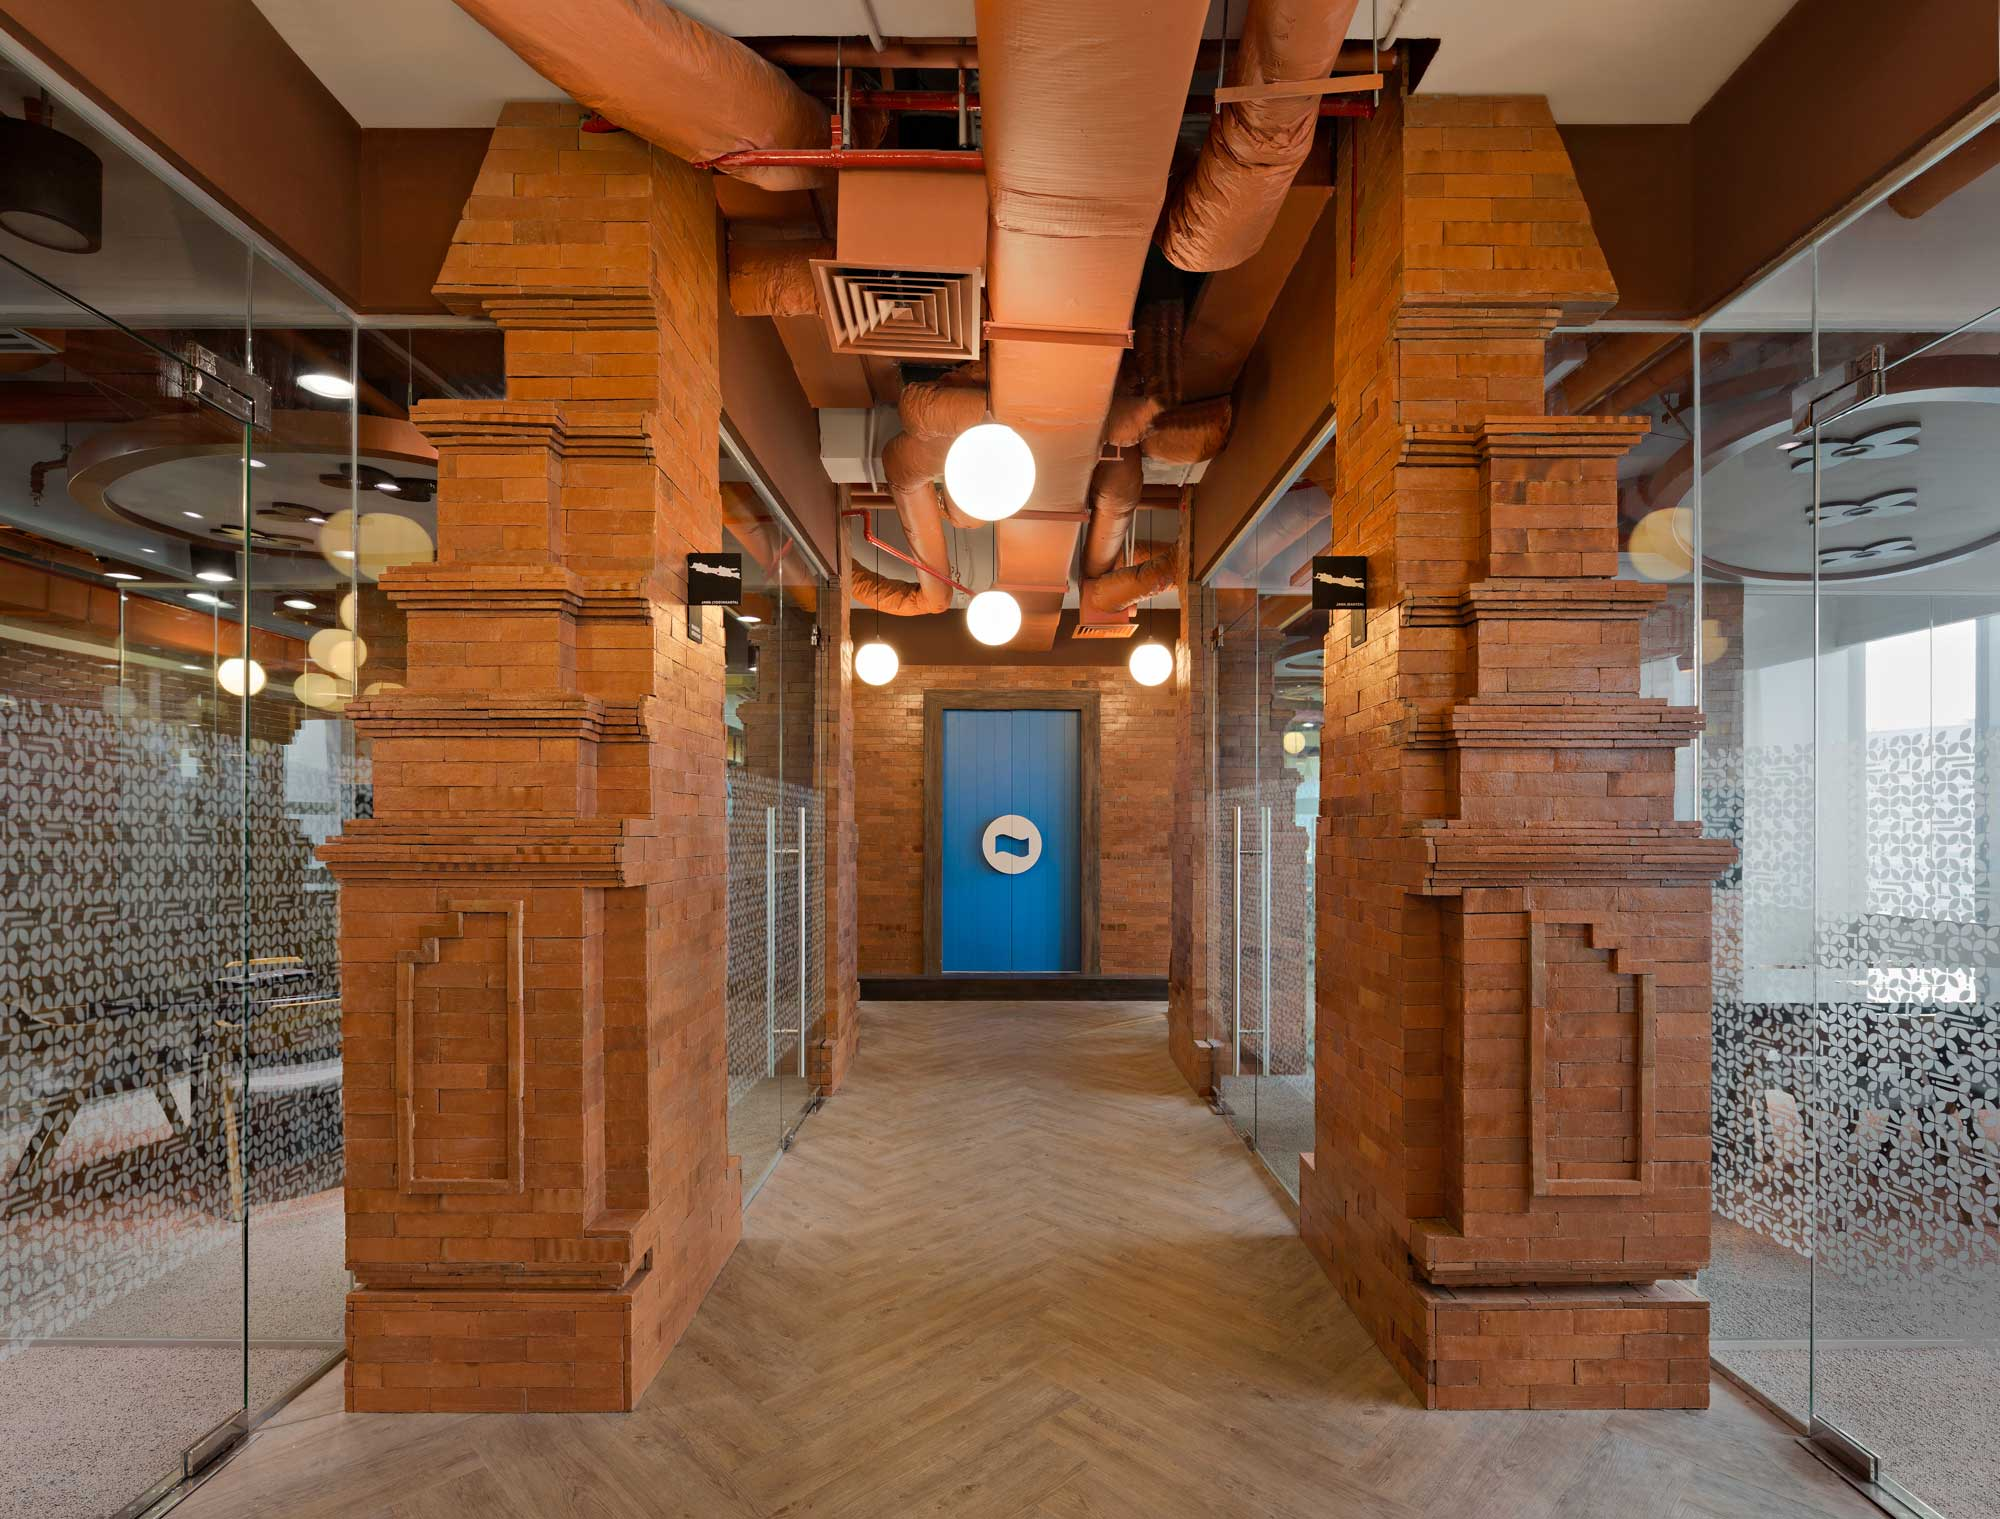 This is a hallway with two meeting rooms on the left and two on the right. Part of the design is a Balinese gate 'Candi Bentar'. Interior Design + Build by AVIP.